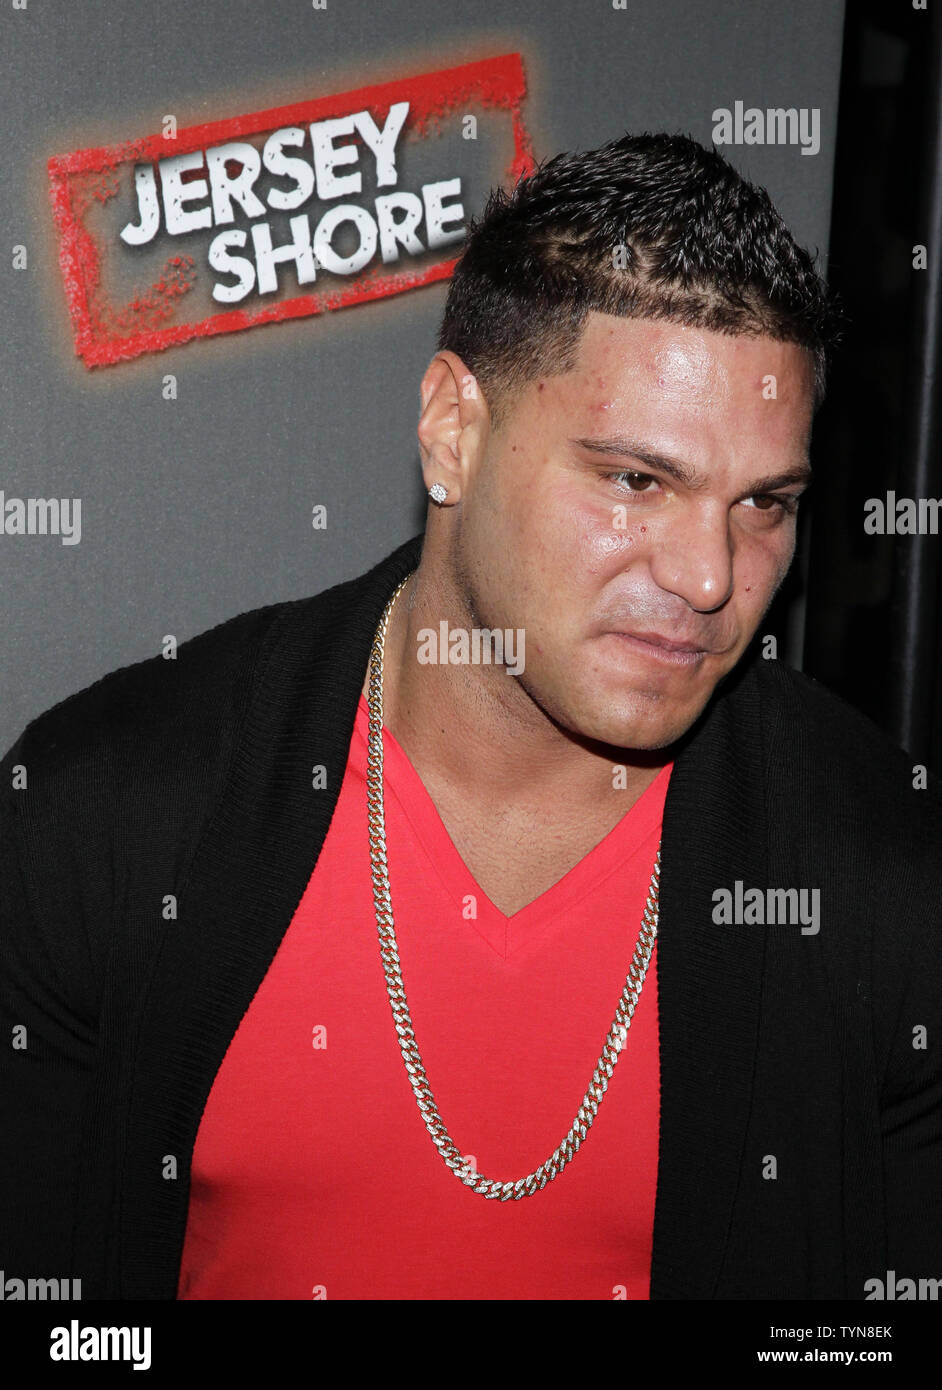 Ronnie Ortiz-Magro arrives on the red carpet for the 'Jersey Shore' Final Season Premiere at Bagatelle in New York City on October 4, 2012.       UPI/John Angelillo Stock Photo